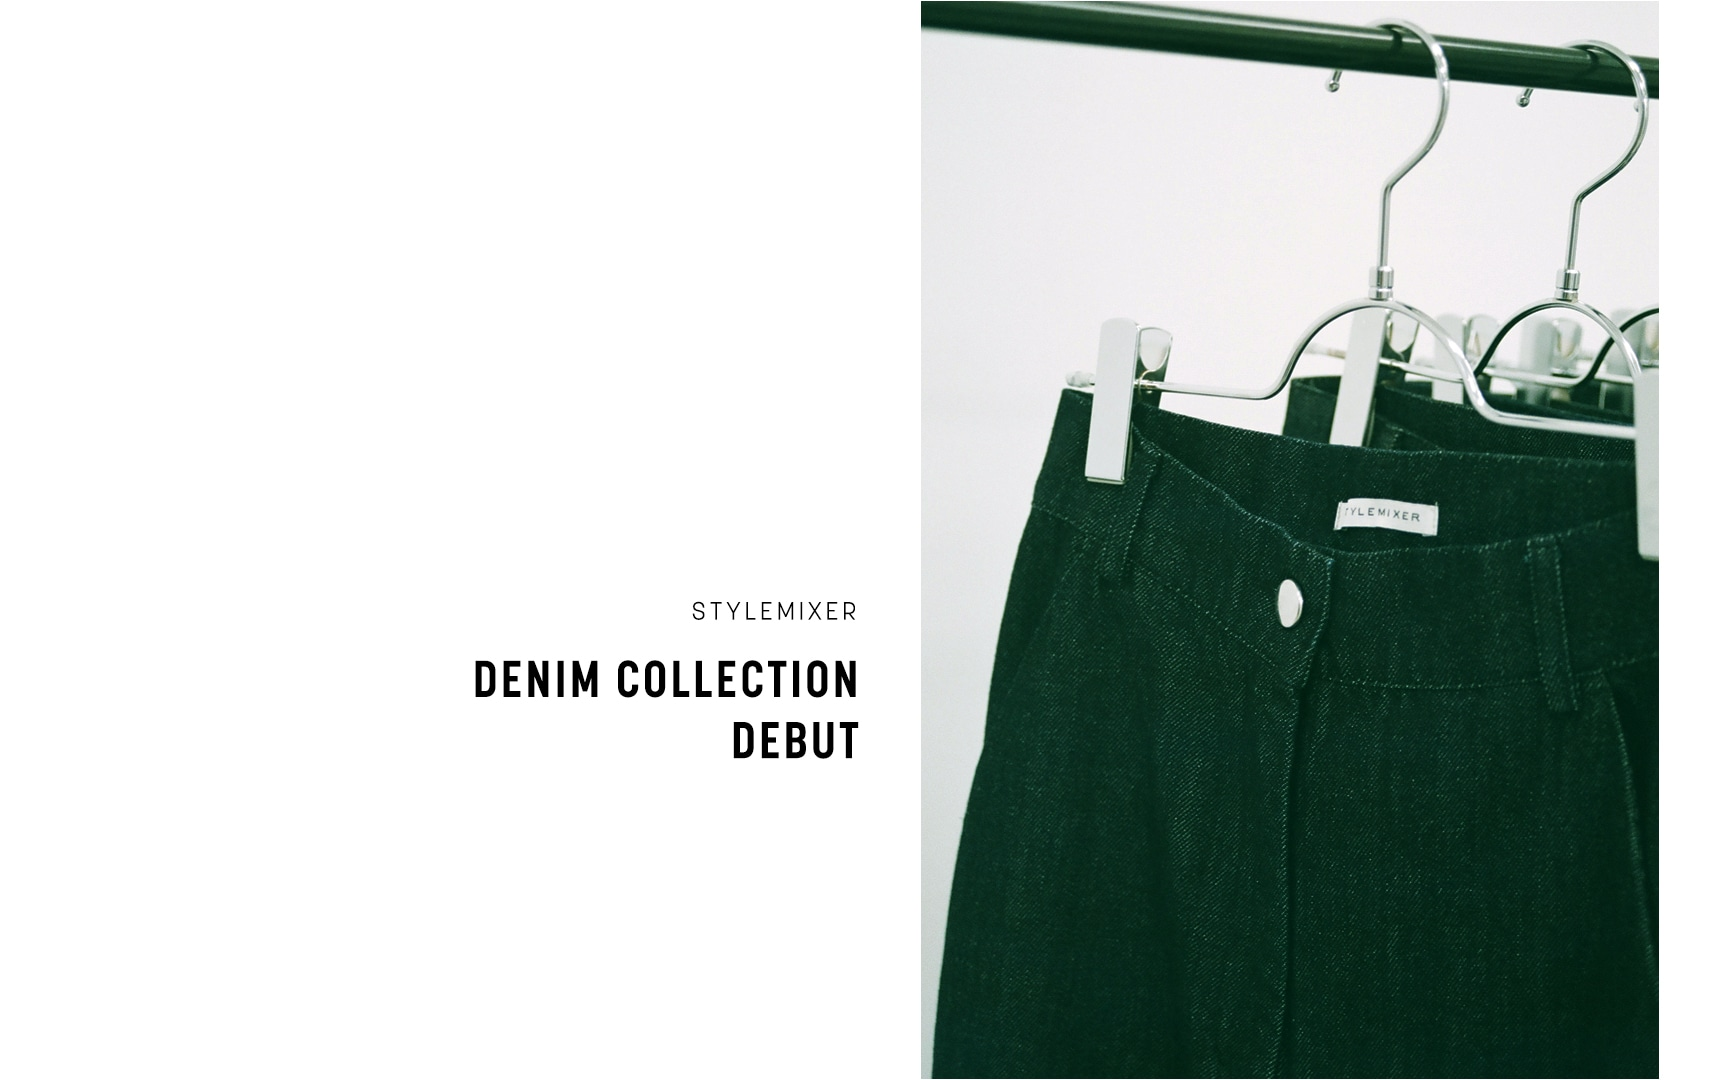 20191122_STYLEMIXER denim collection